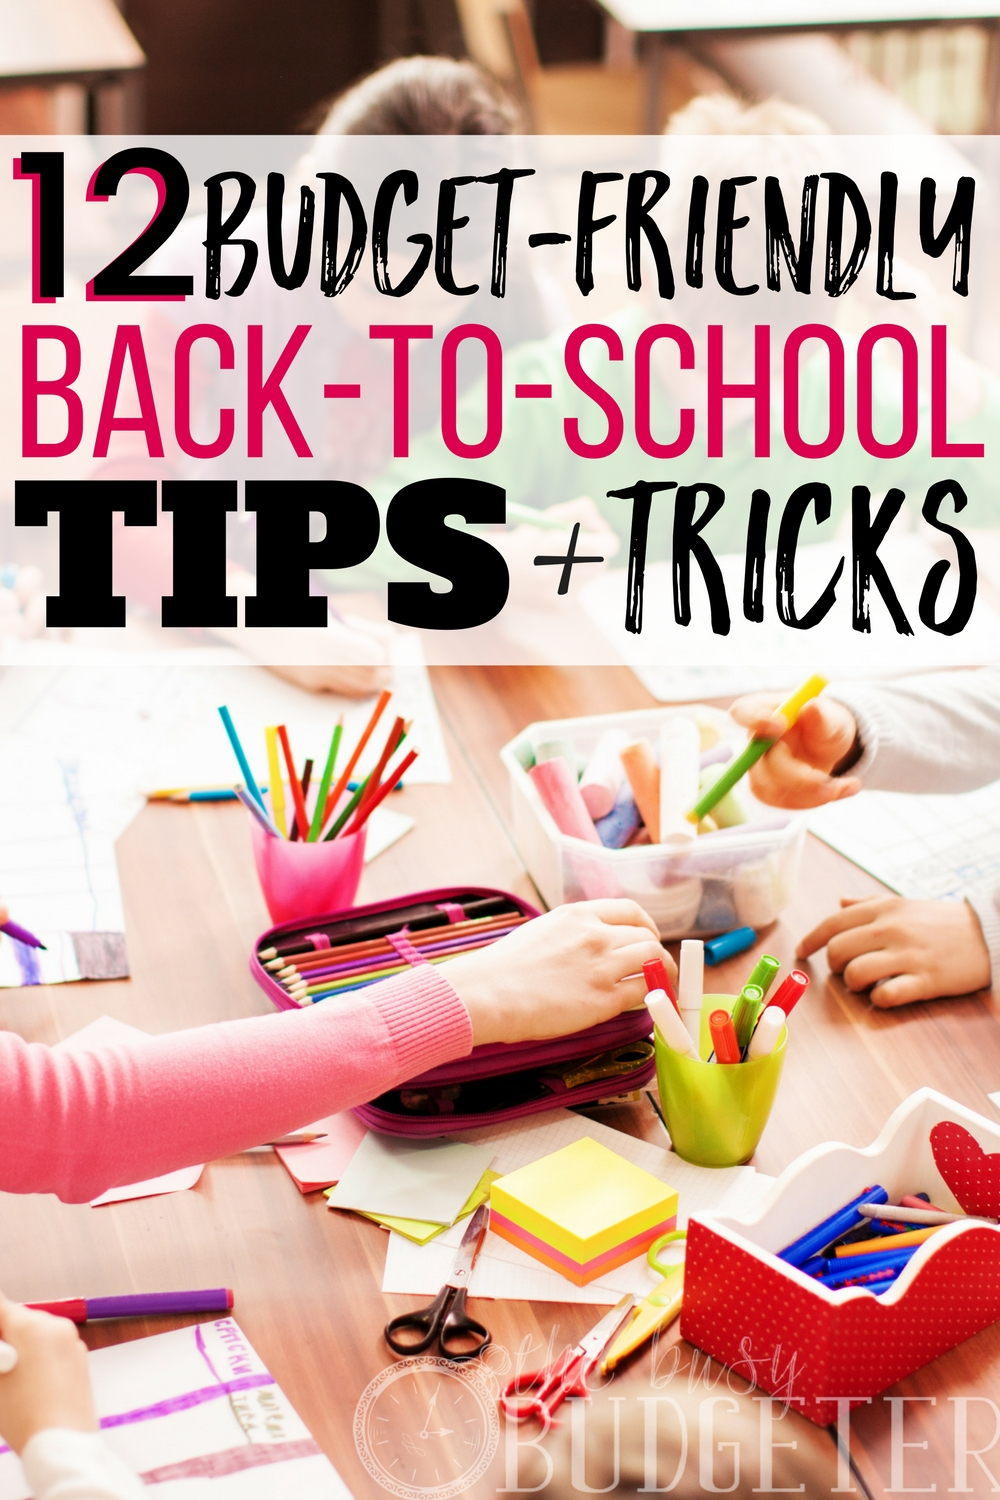 Back to school time never failed to crush our budget until I learned these amazing hacks for school supplies! These back-to-school tips and tricks actually work and help us save money!